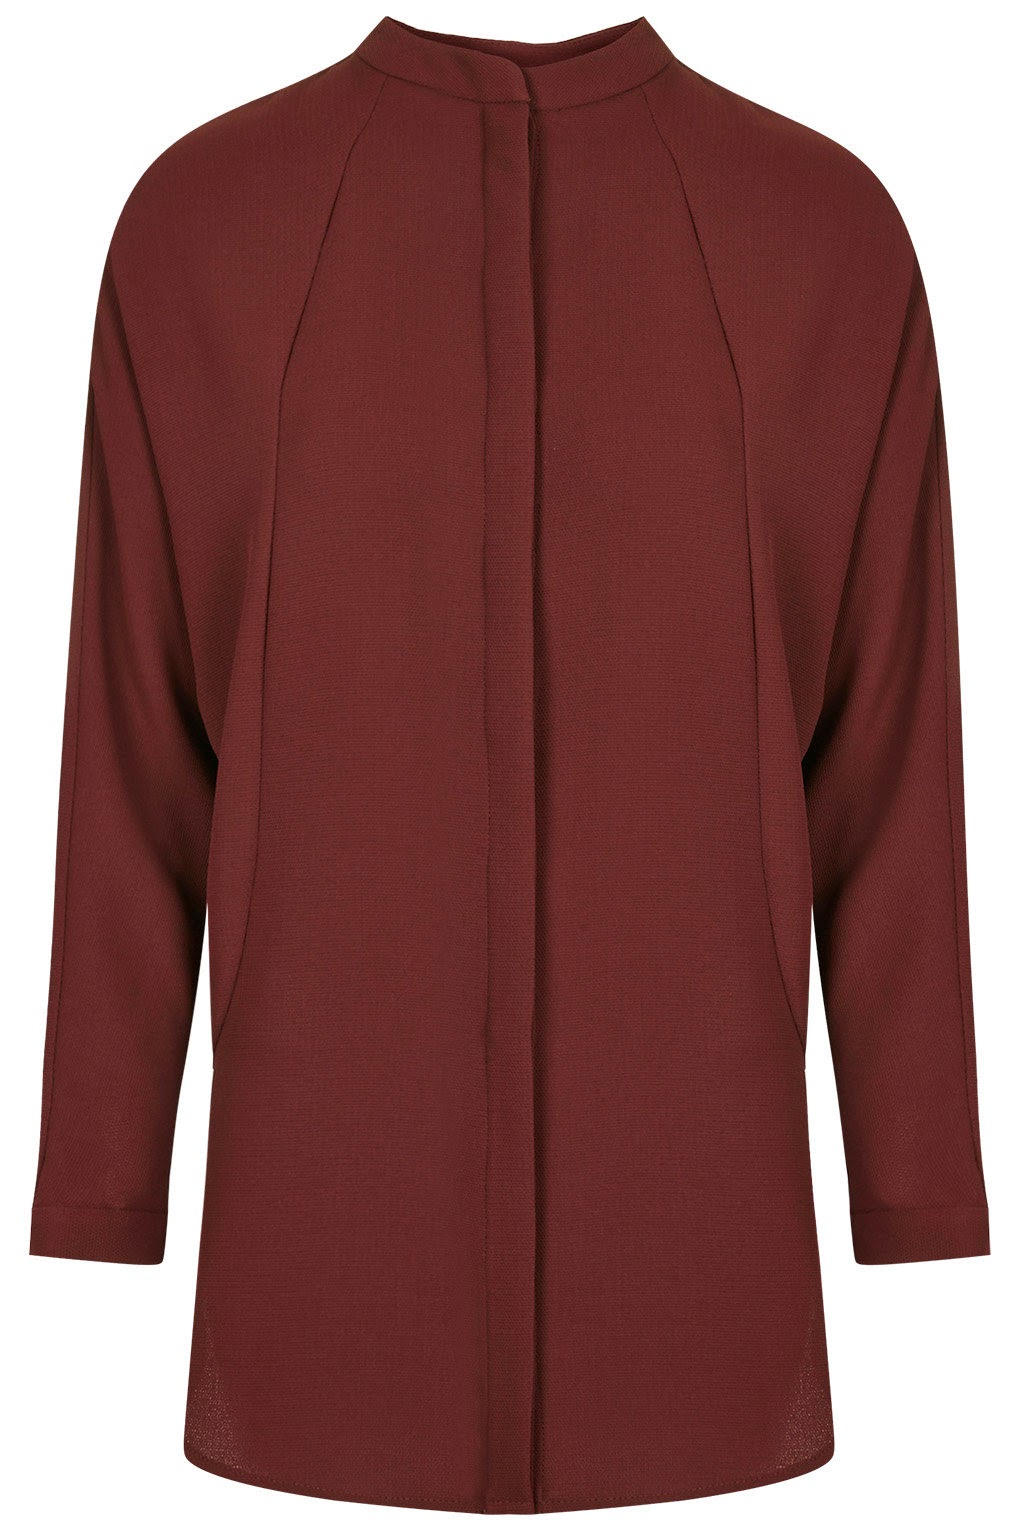 burgundy grandad collar top